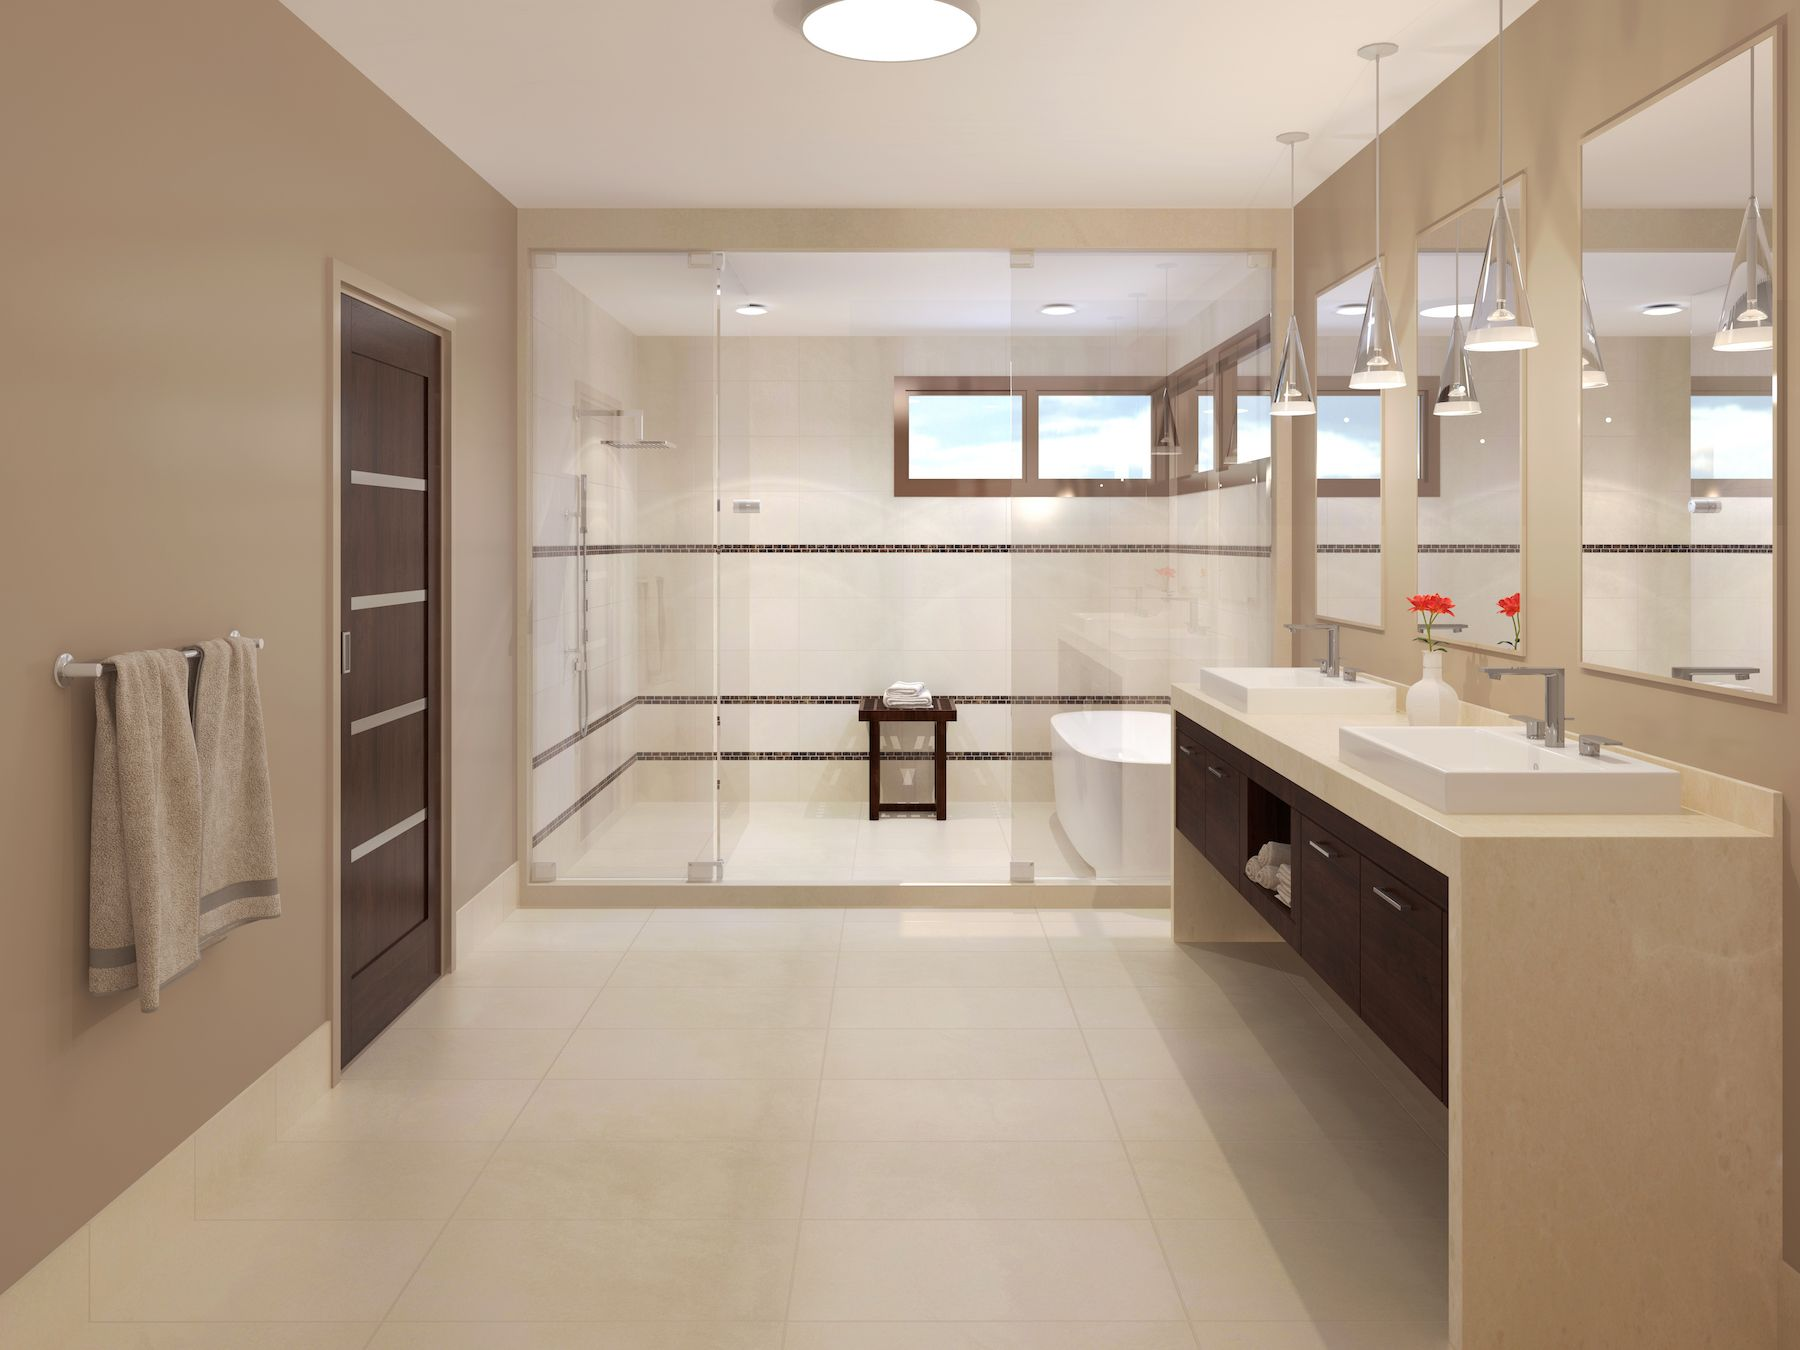 Bathroom featured in the Model A - Three Story By CC Homes in Miami-Dade County, FL